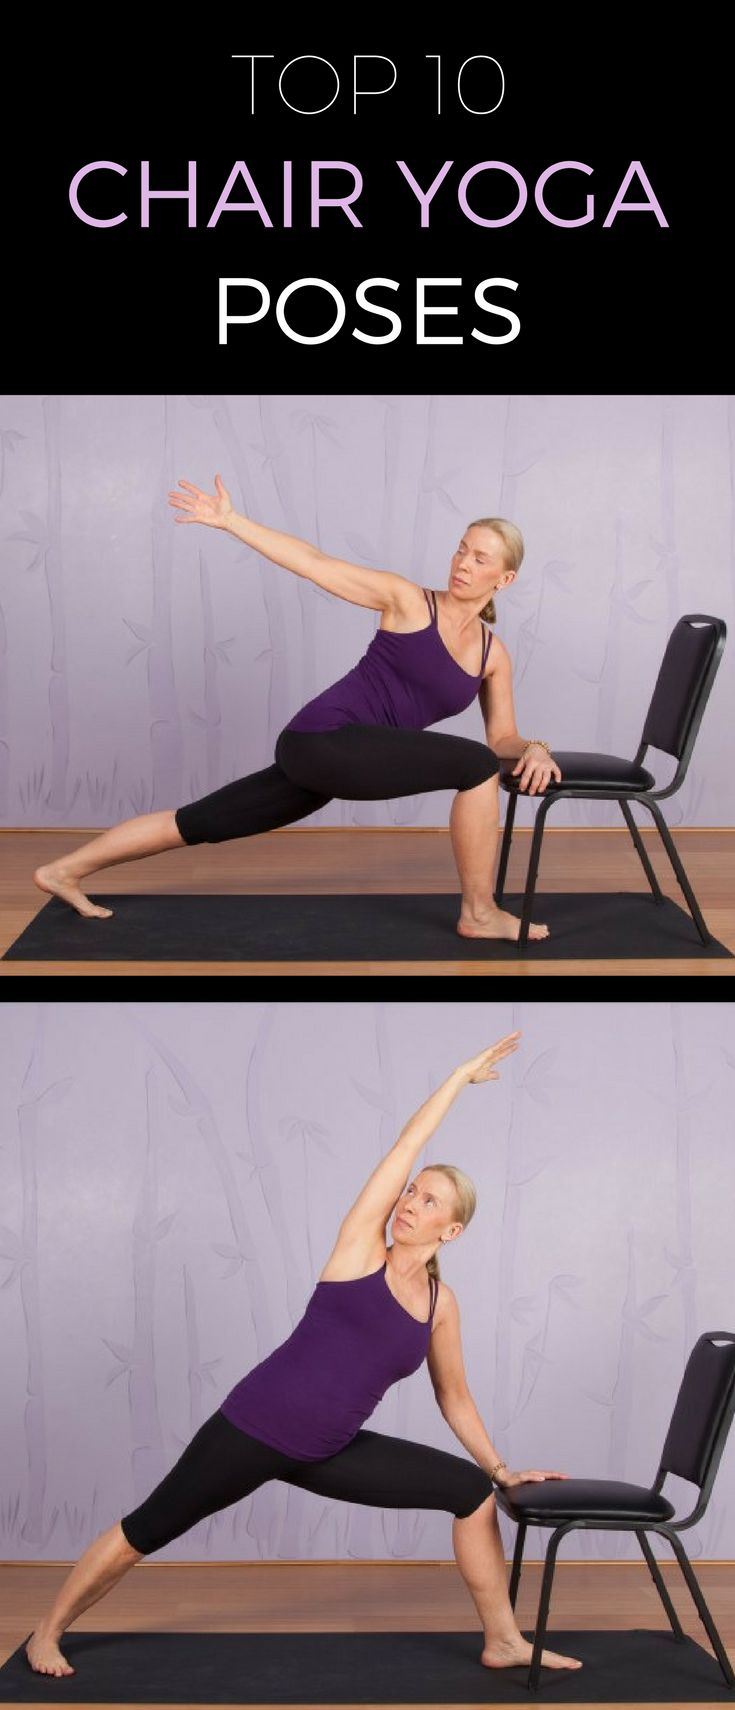 Chair yoga for seniors - Top Chair Yoga Poses For Seniors